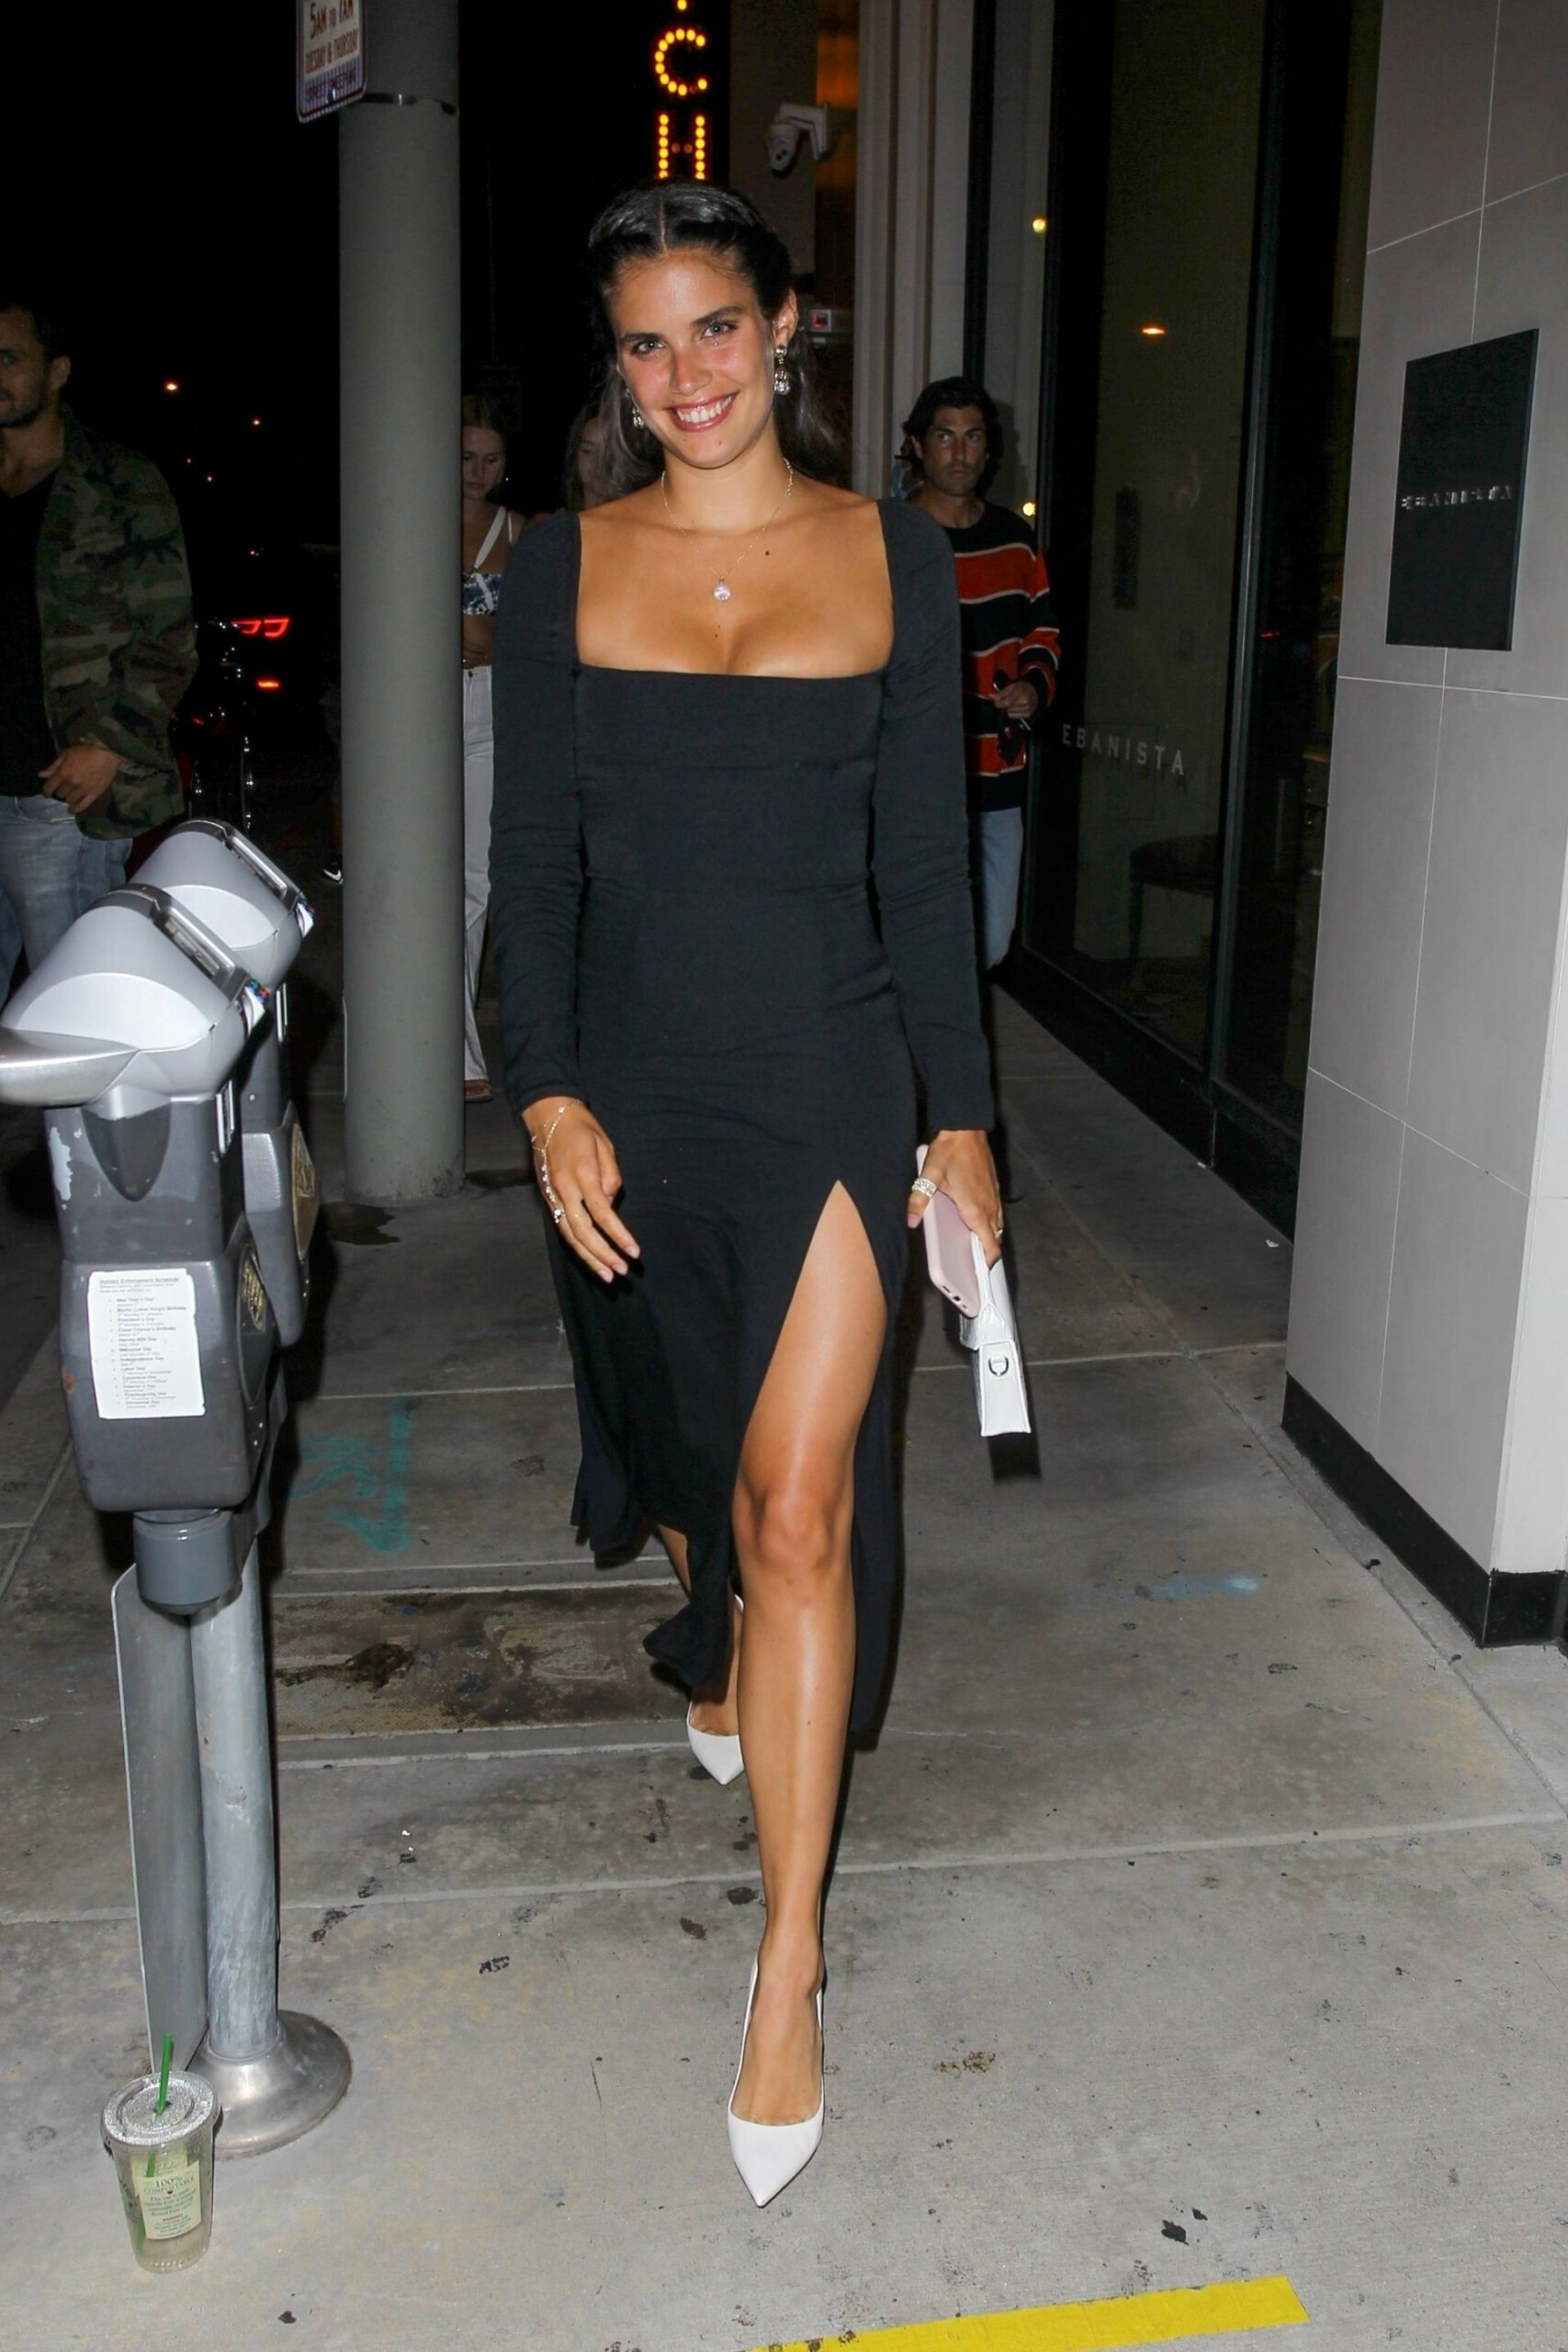 Sara Sampaio – Beautiful In Sexy Black Dress At Catch Restaurant In West Hollywood 0011